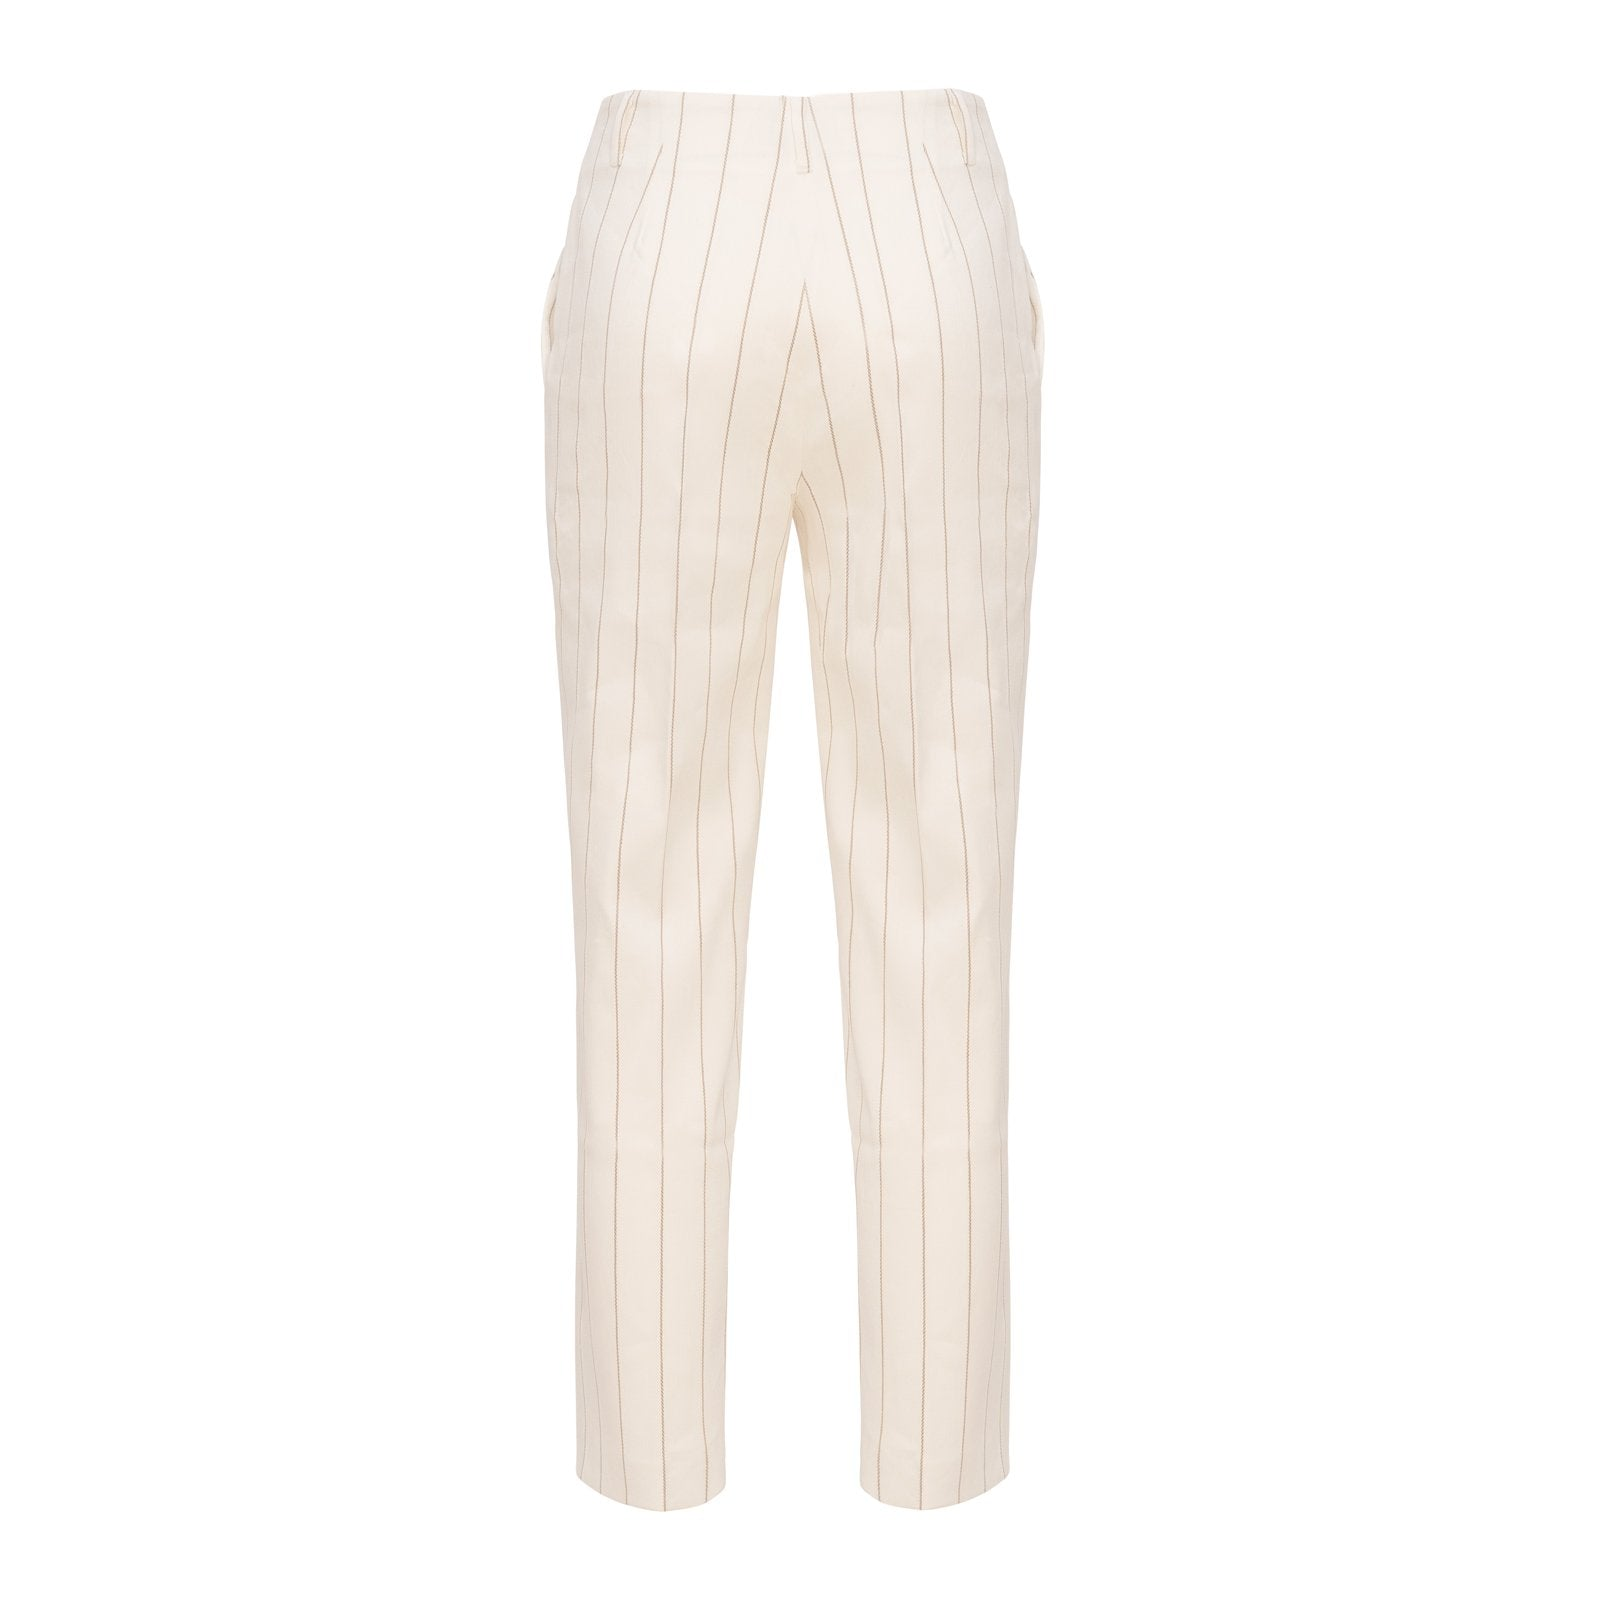 PUR3003 STRIPES PANTS